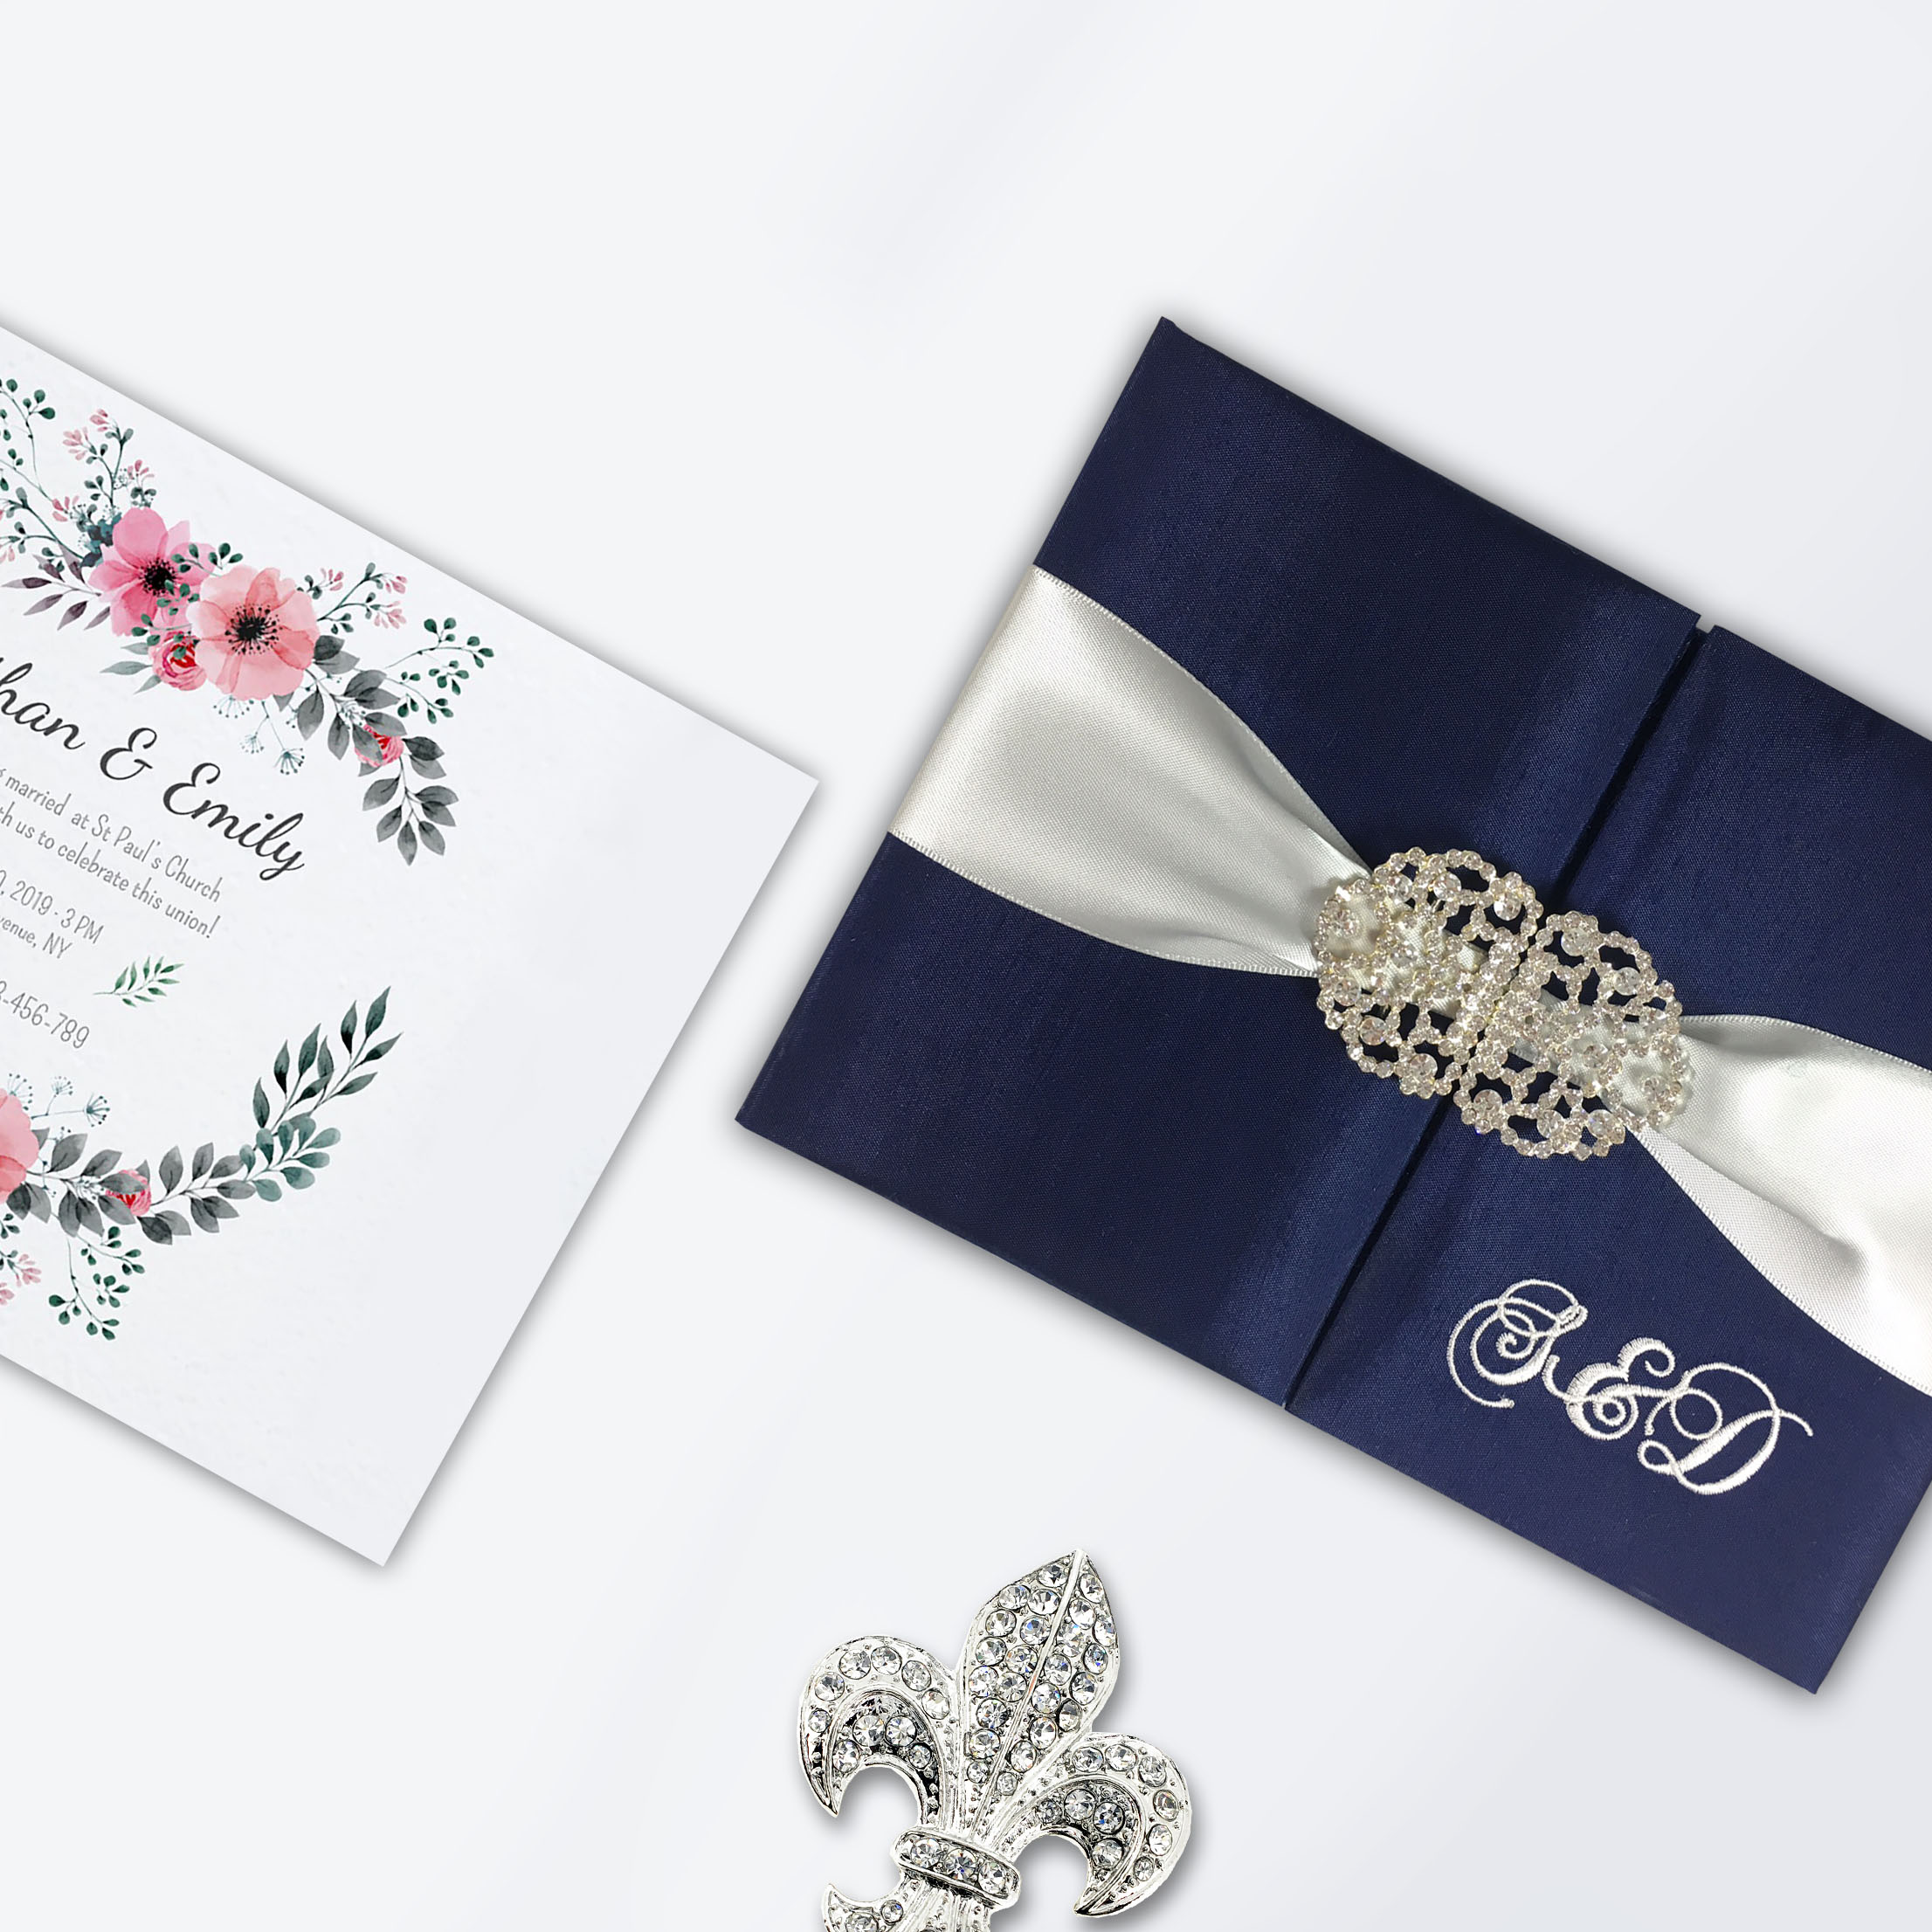 monogram embroidered wedding invitations